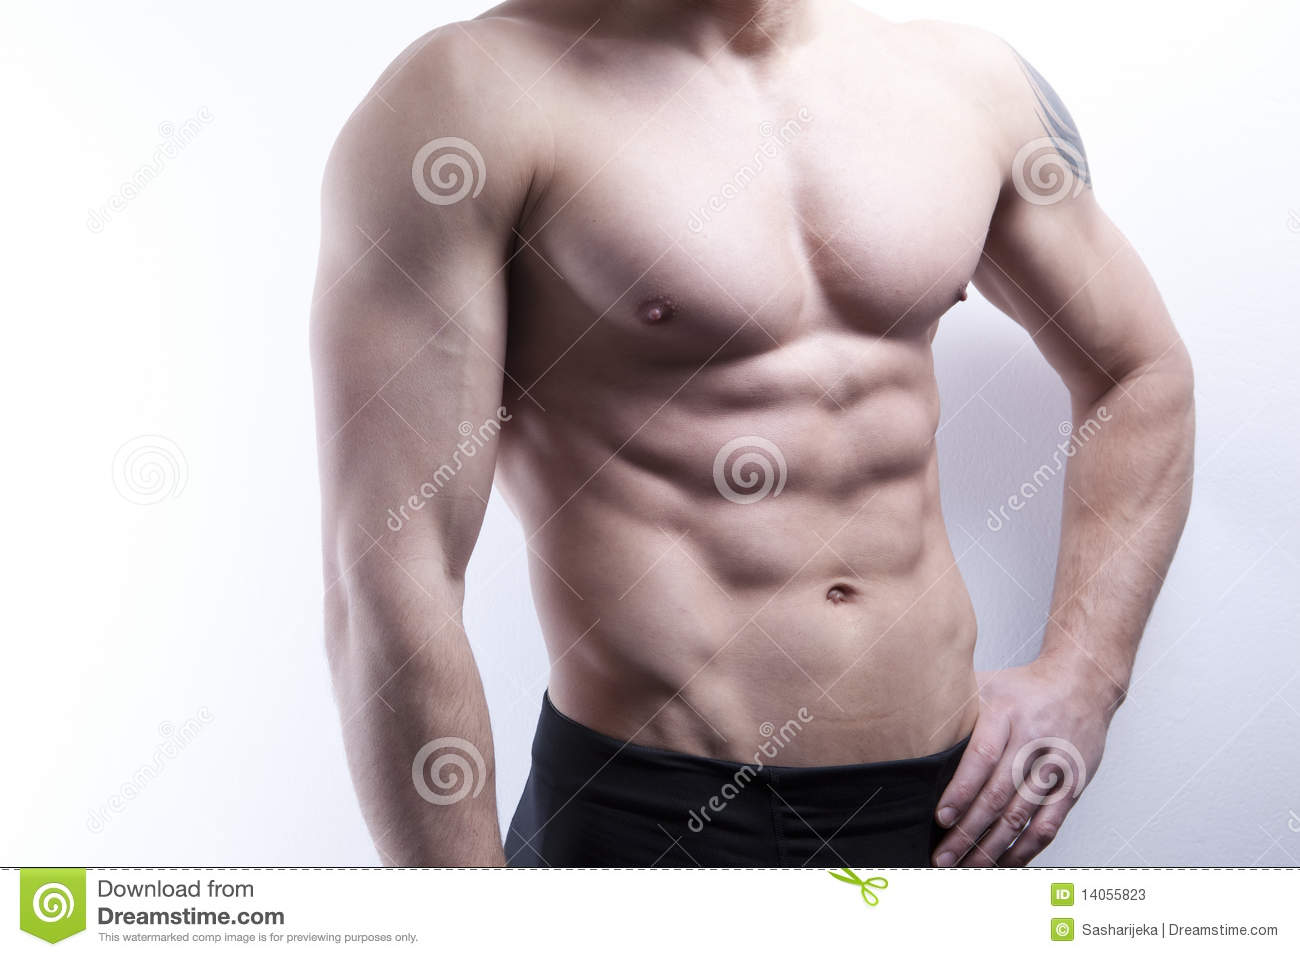 Six Pack Stock Photo - Download Image Now - iStock